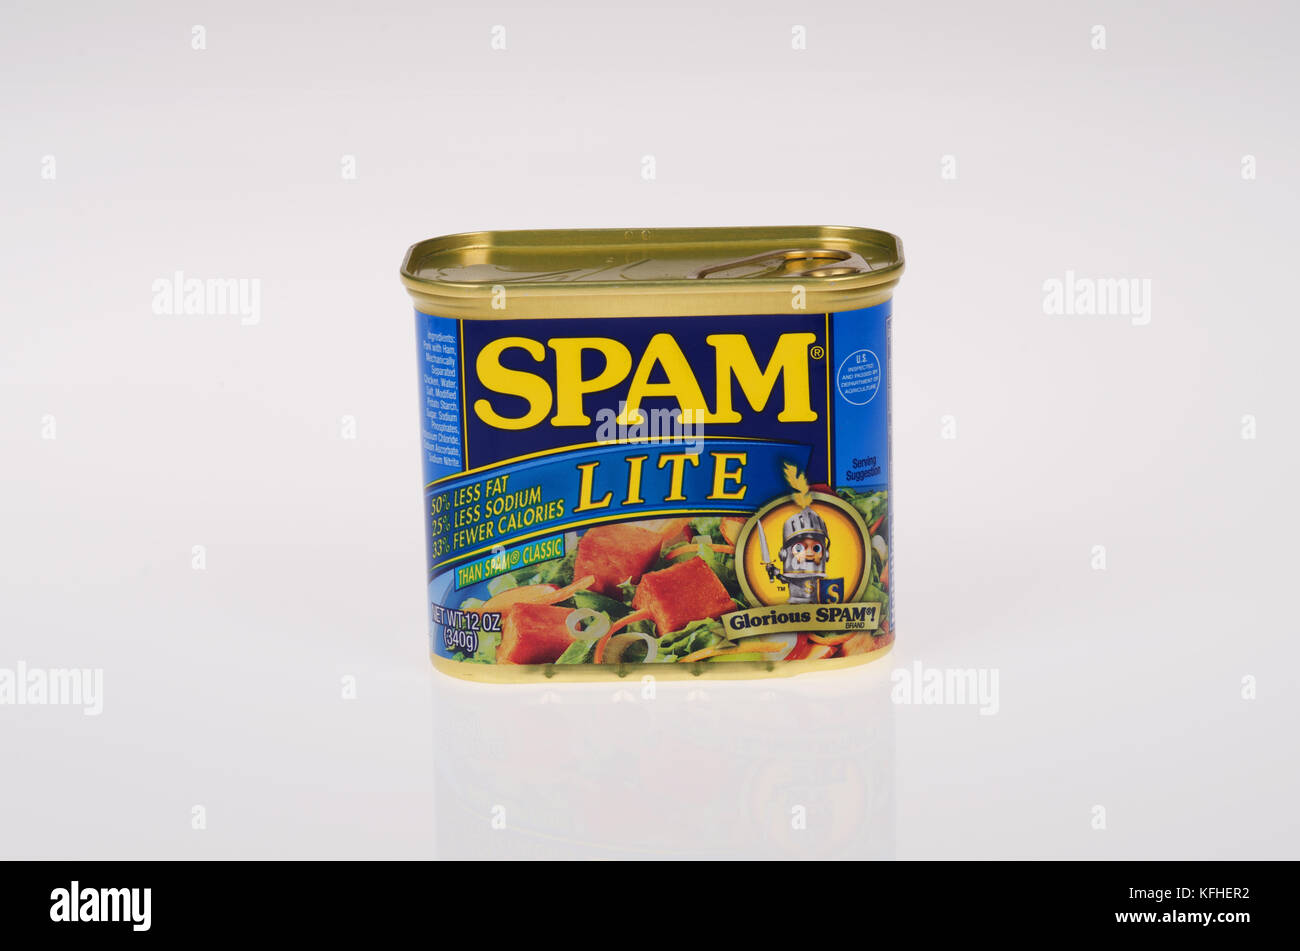 Spam Lite can by Hormel - Stock Image